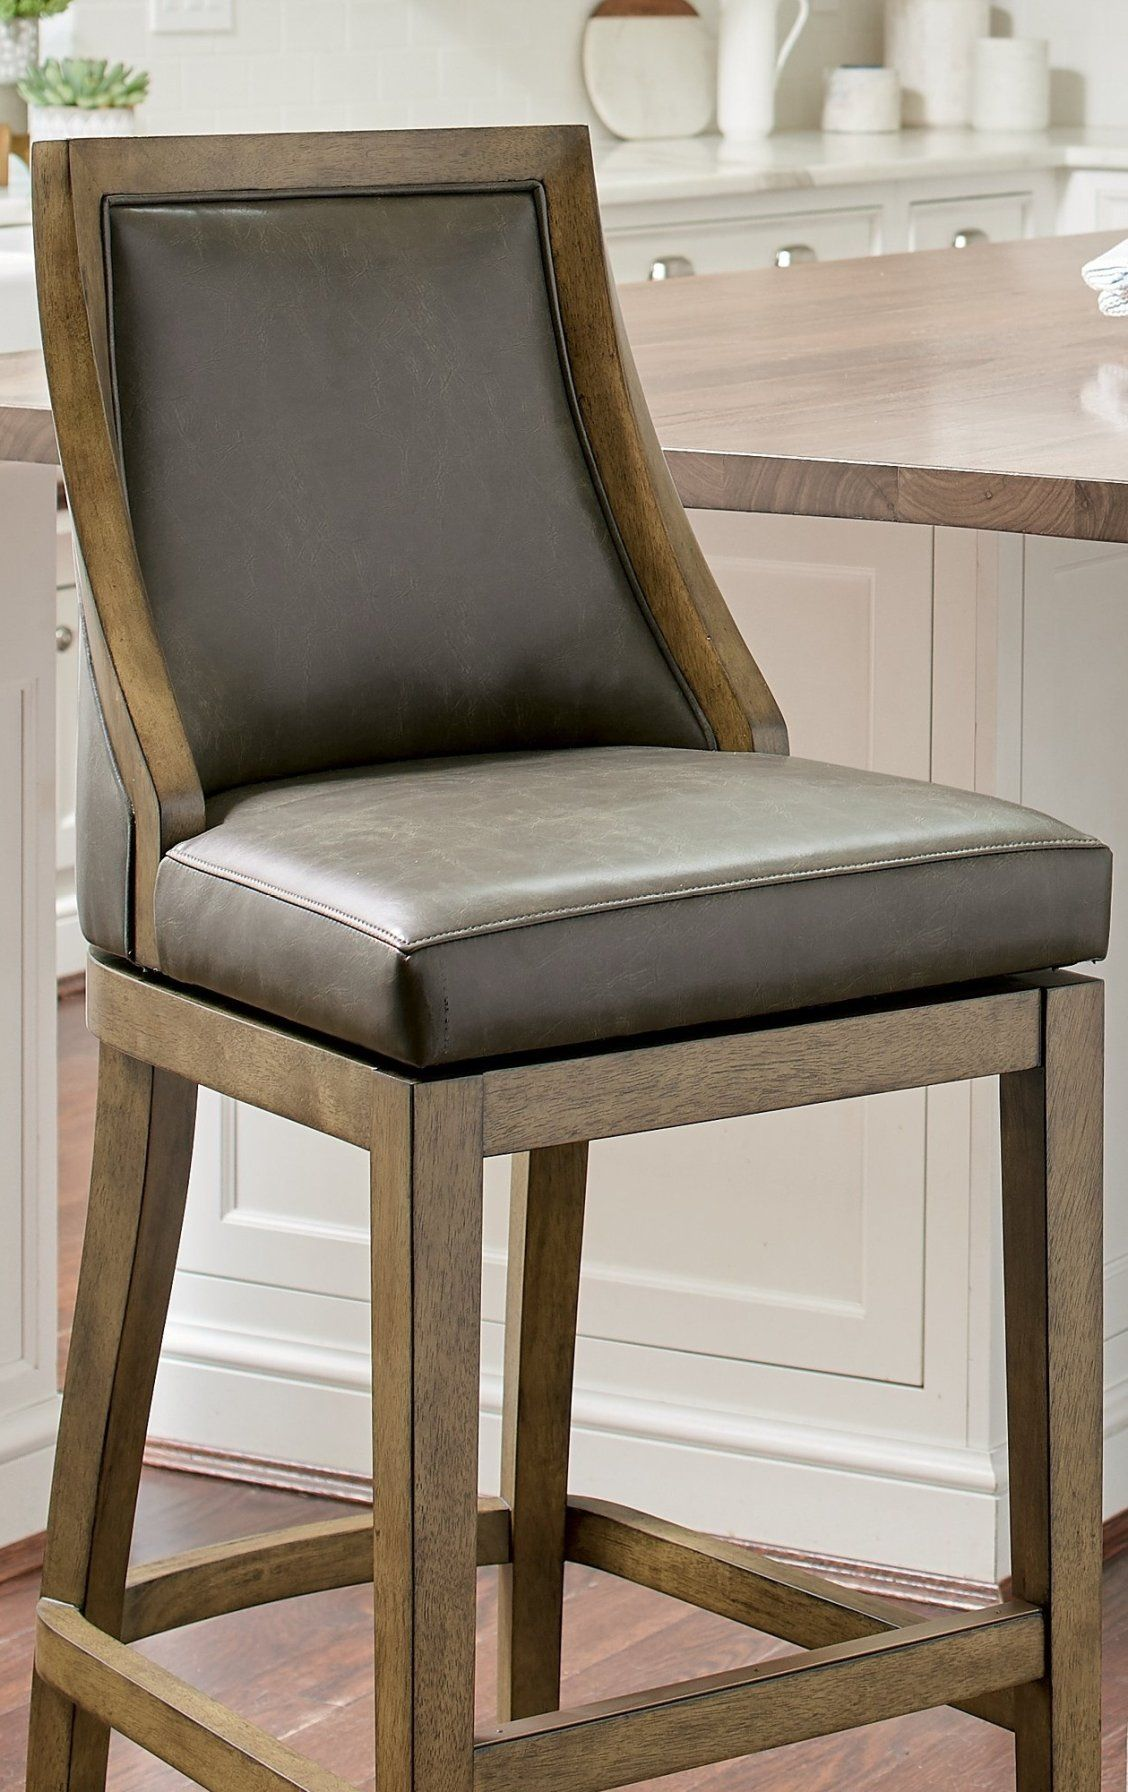 Ellis Swivel Bar Counter Stool In 2020 Counter Stools Shop